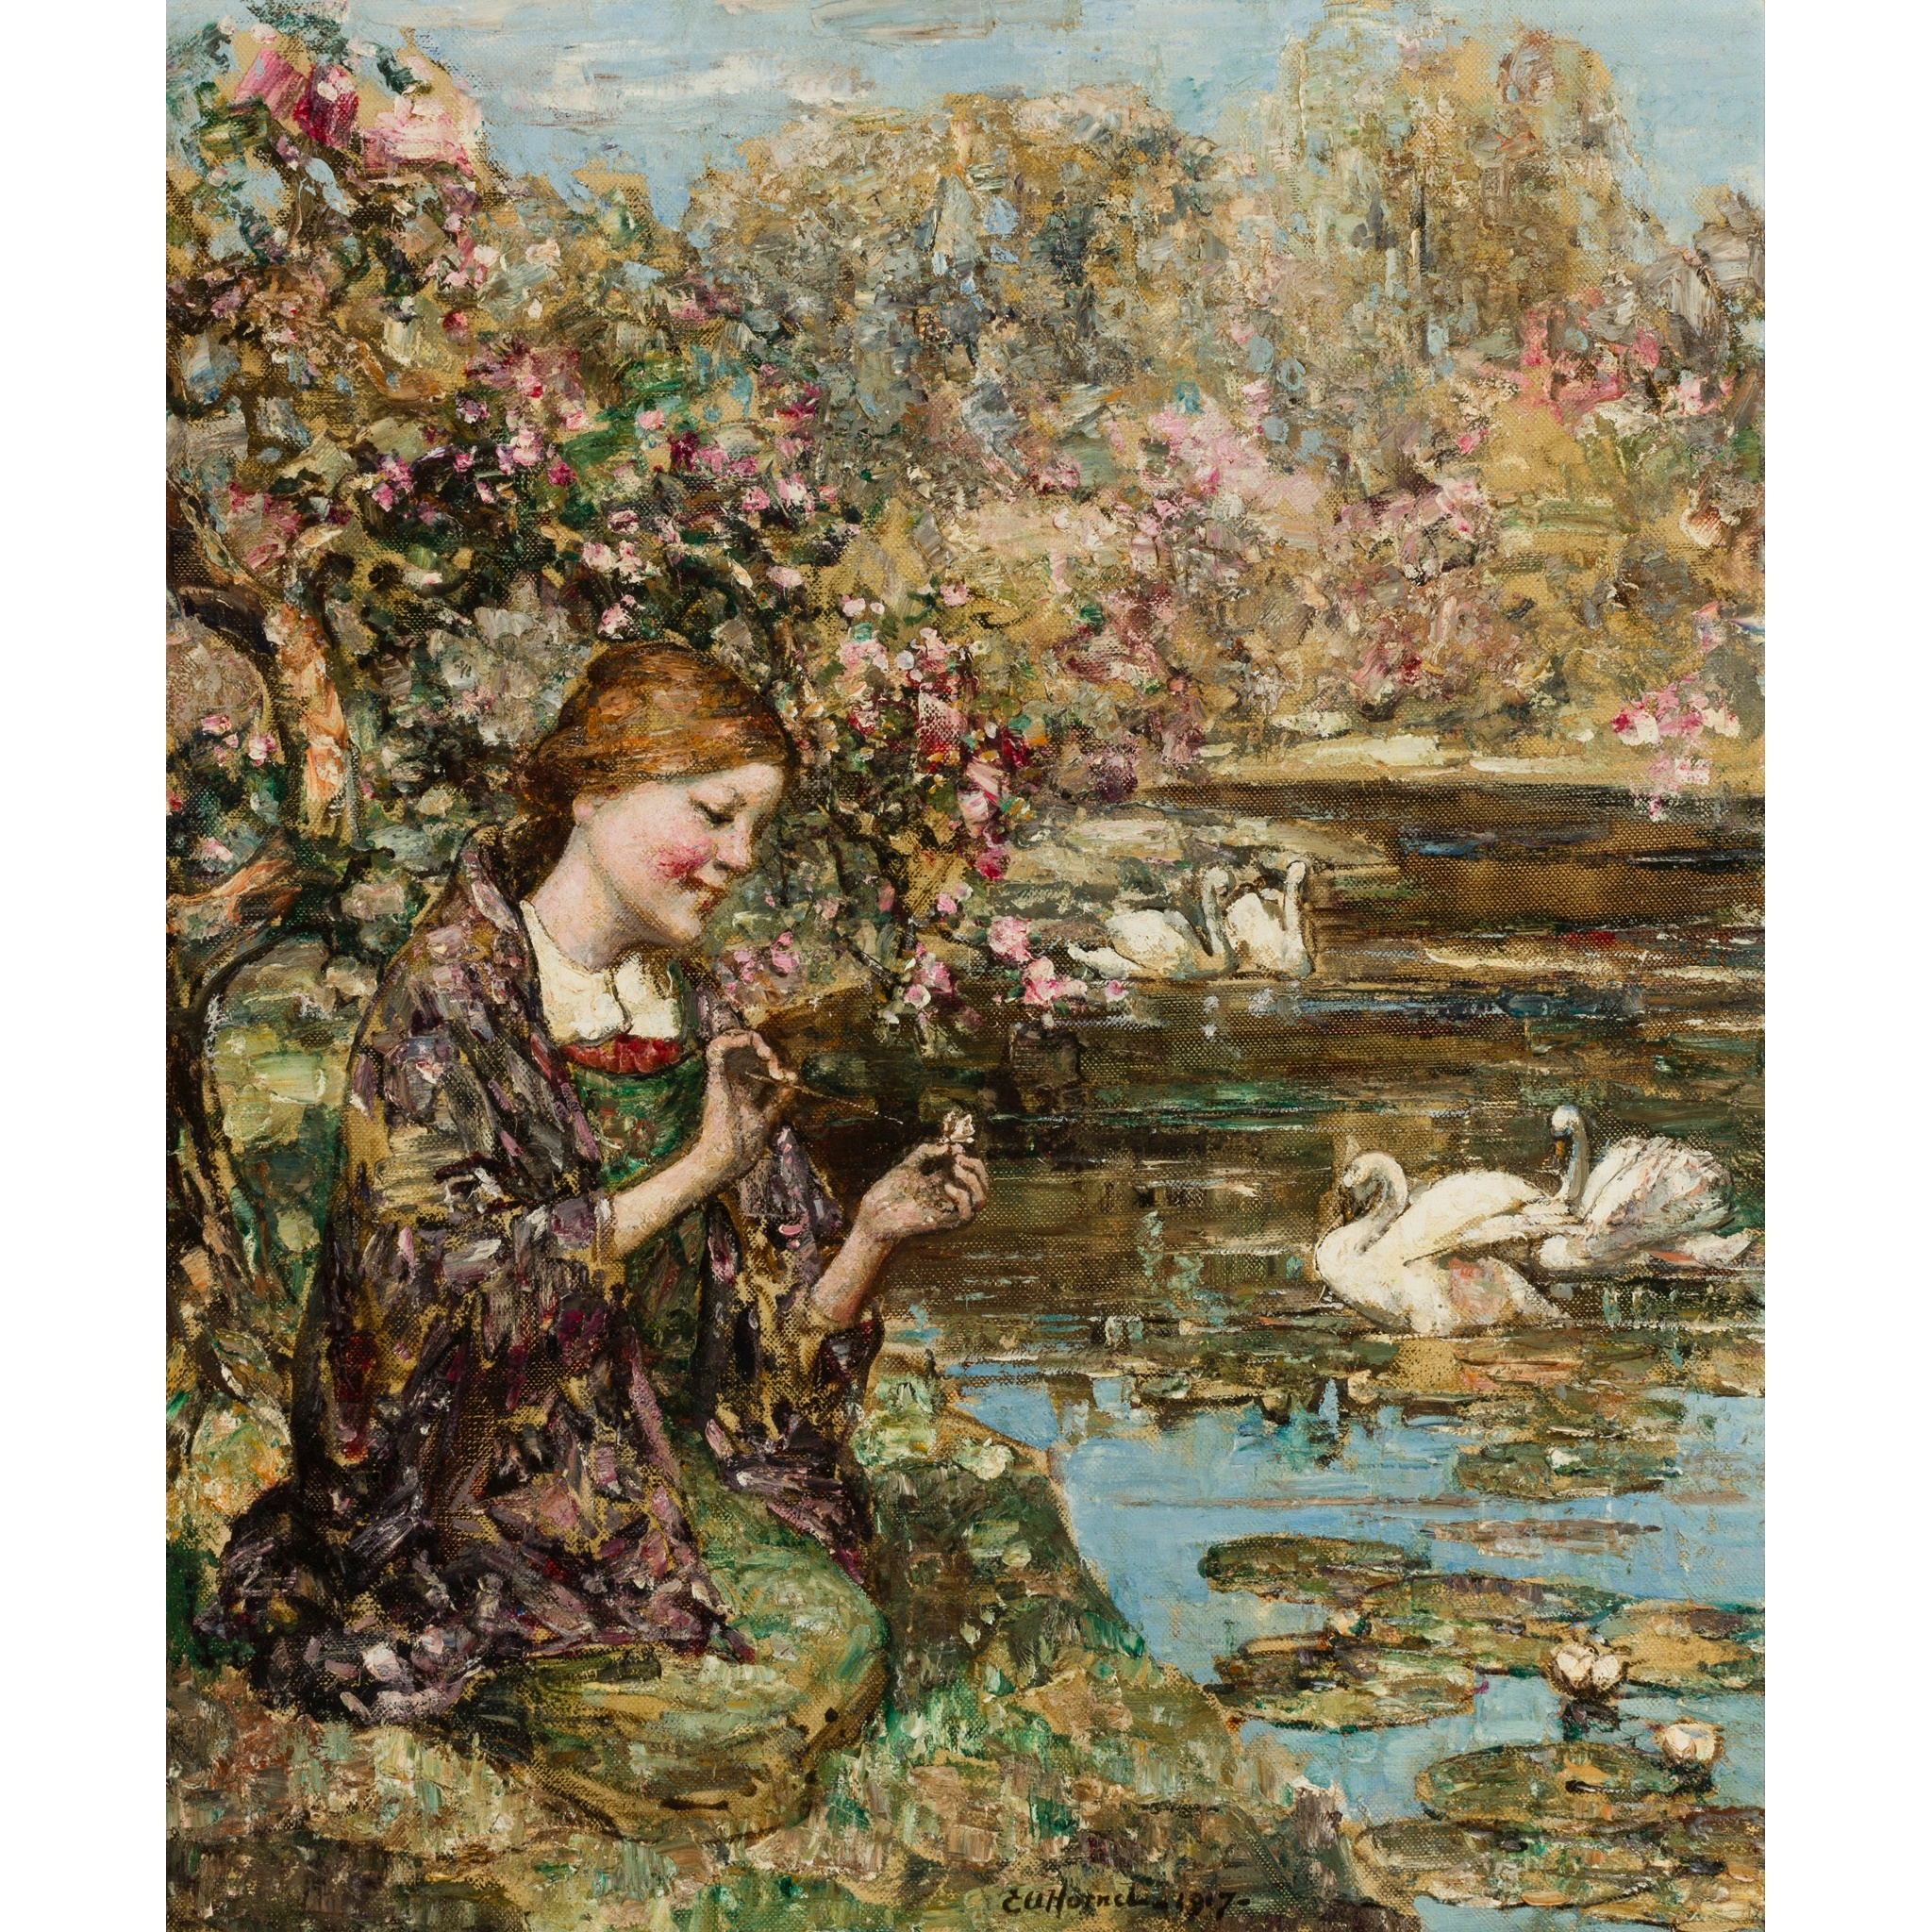 EDWARD ATKINSON HORNEL (SCOTTISH 1864-1933) | SWAN LAKE Signed and dated 1917, oil on canvas | 765cm x 63cm (30in x 25in) Sold for £13,750 incl premium